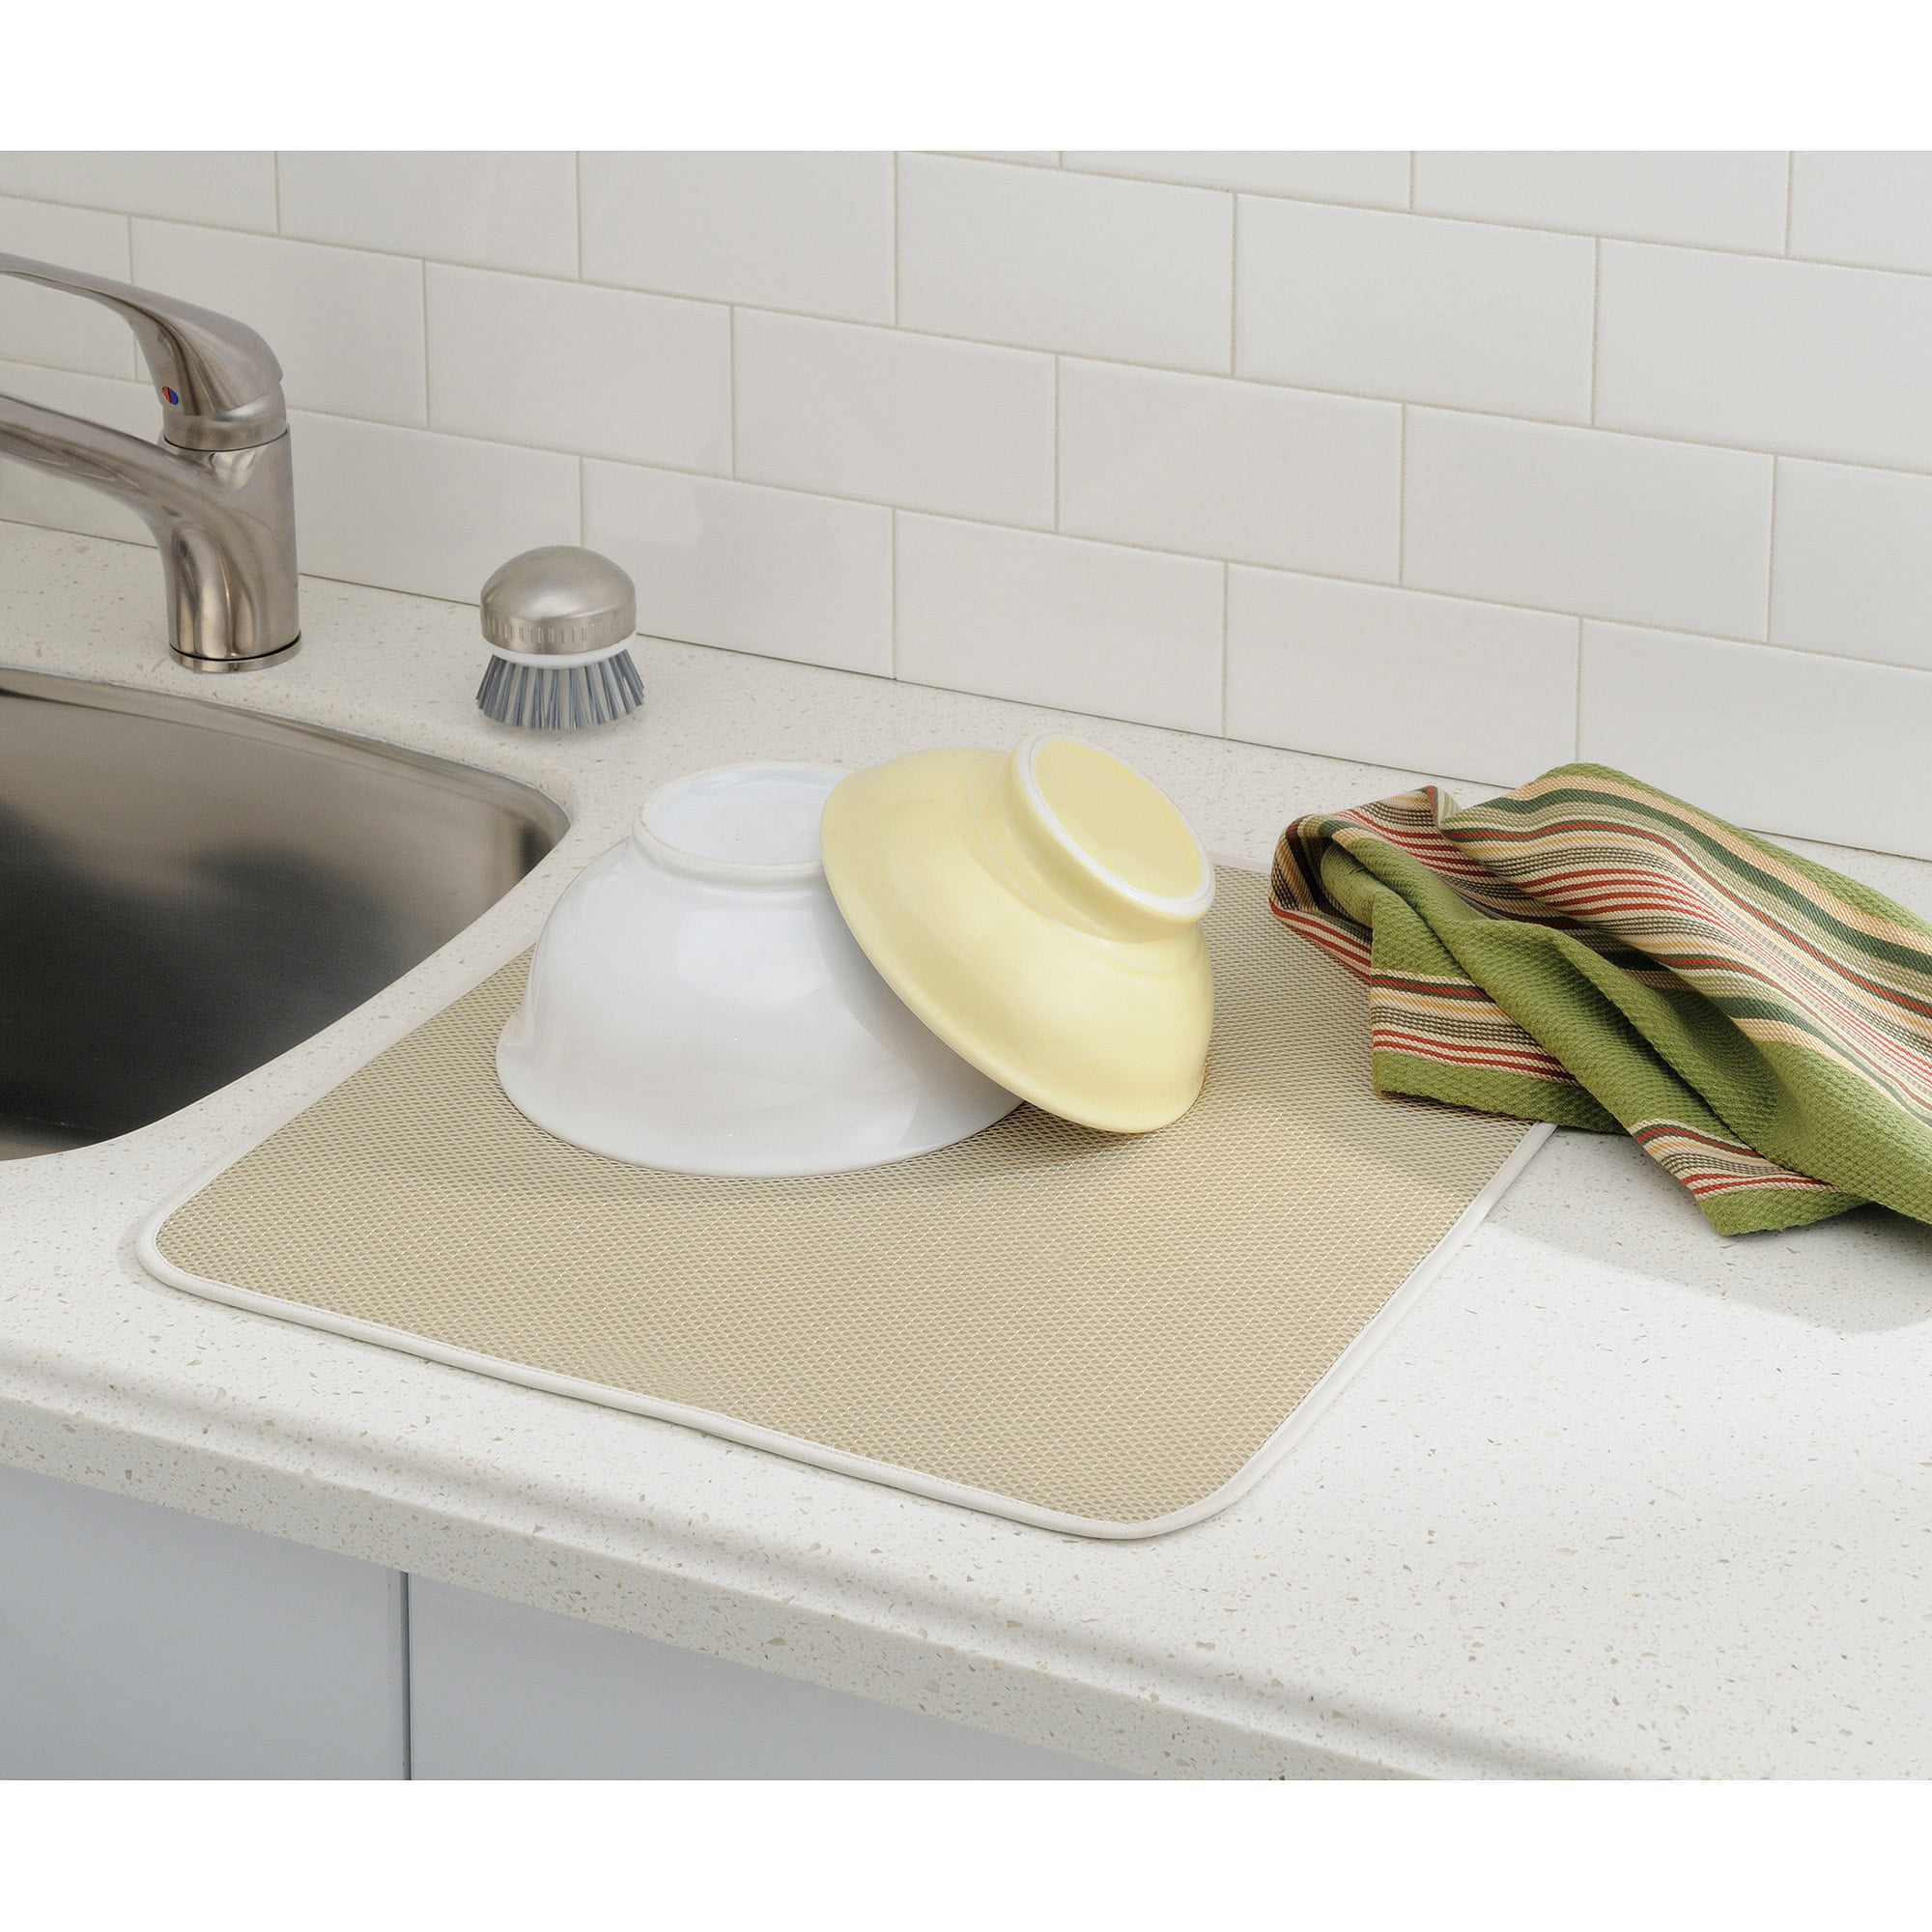 of runners floor mat mats corner new rooster sink thin kitchen